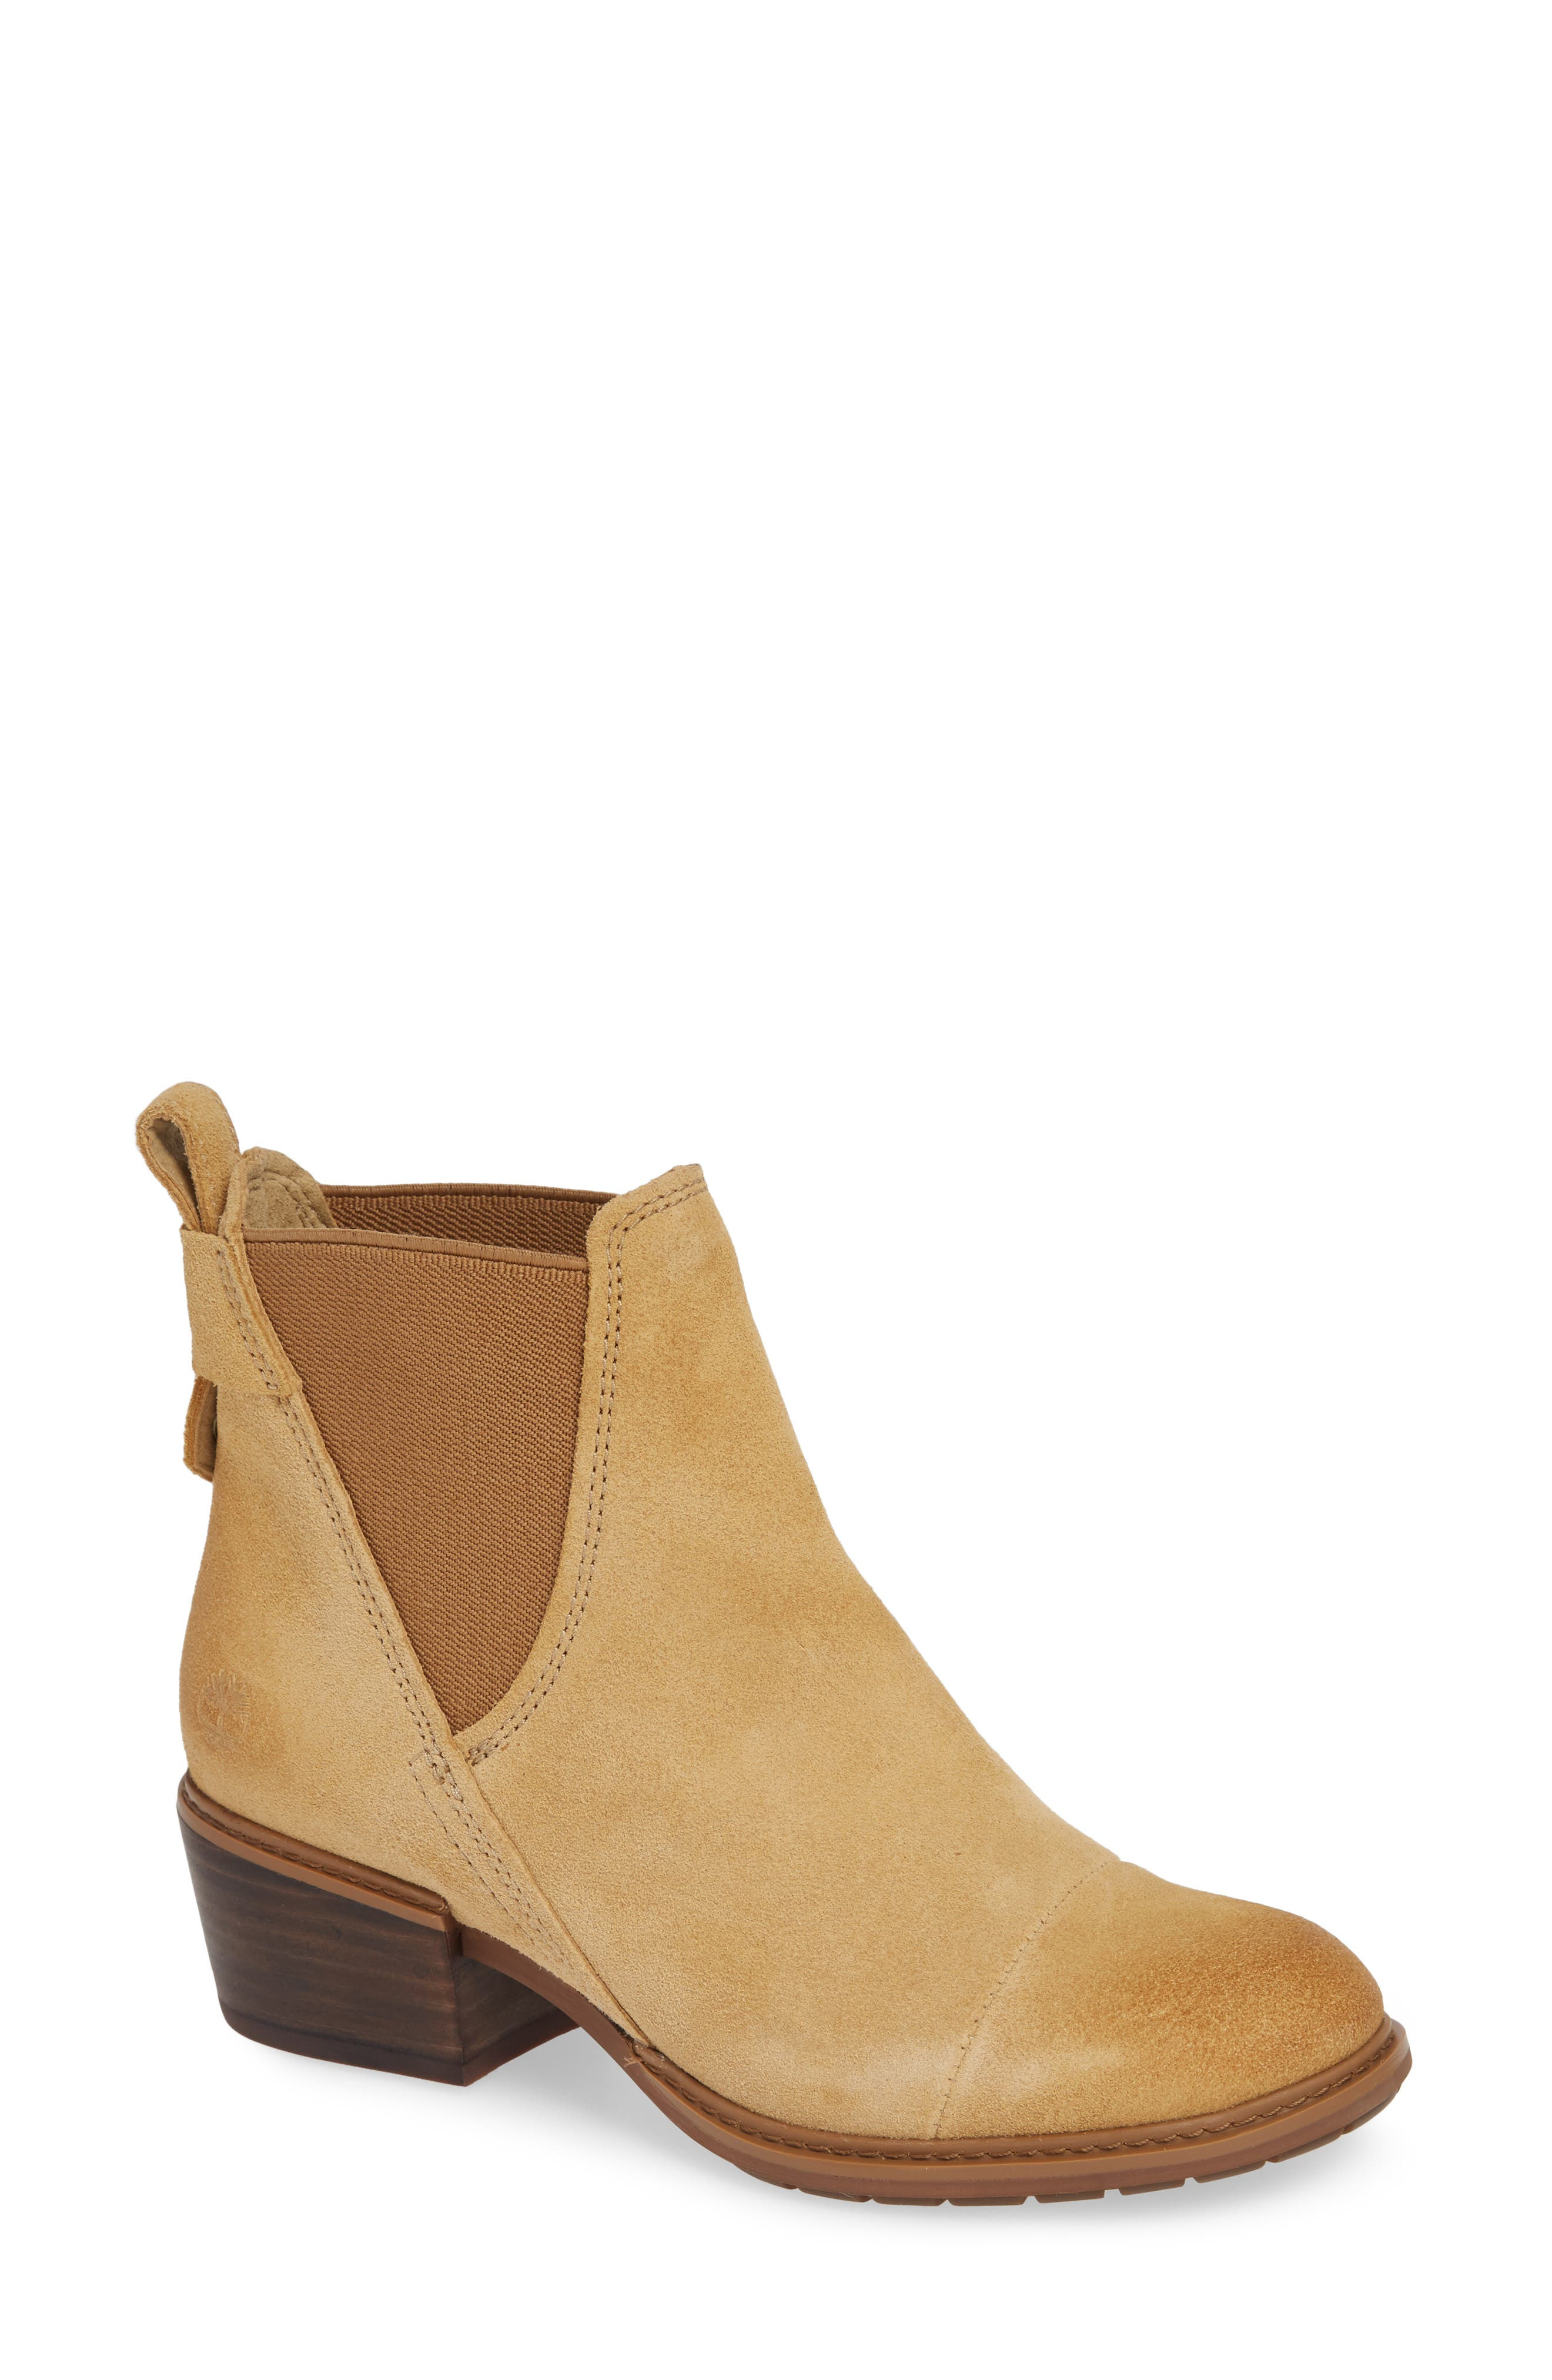 TIMBERLAND Sutherlin Bay Slouch Chelsea Bootie, Main, color, ICED COFFEE SUEDE